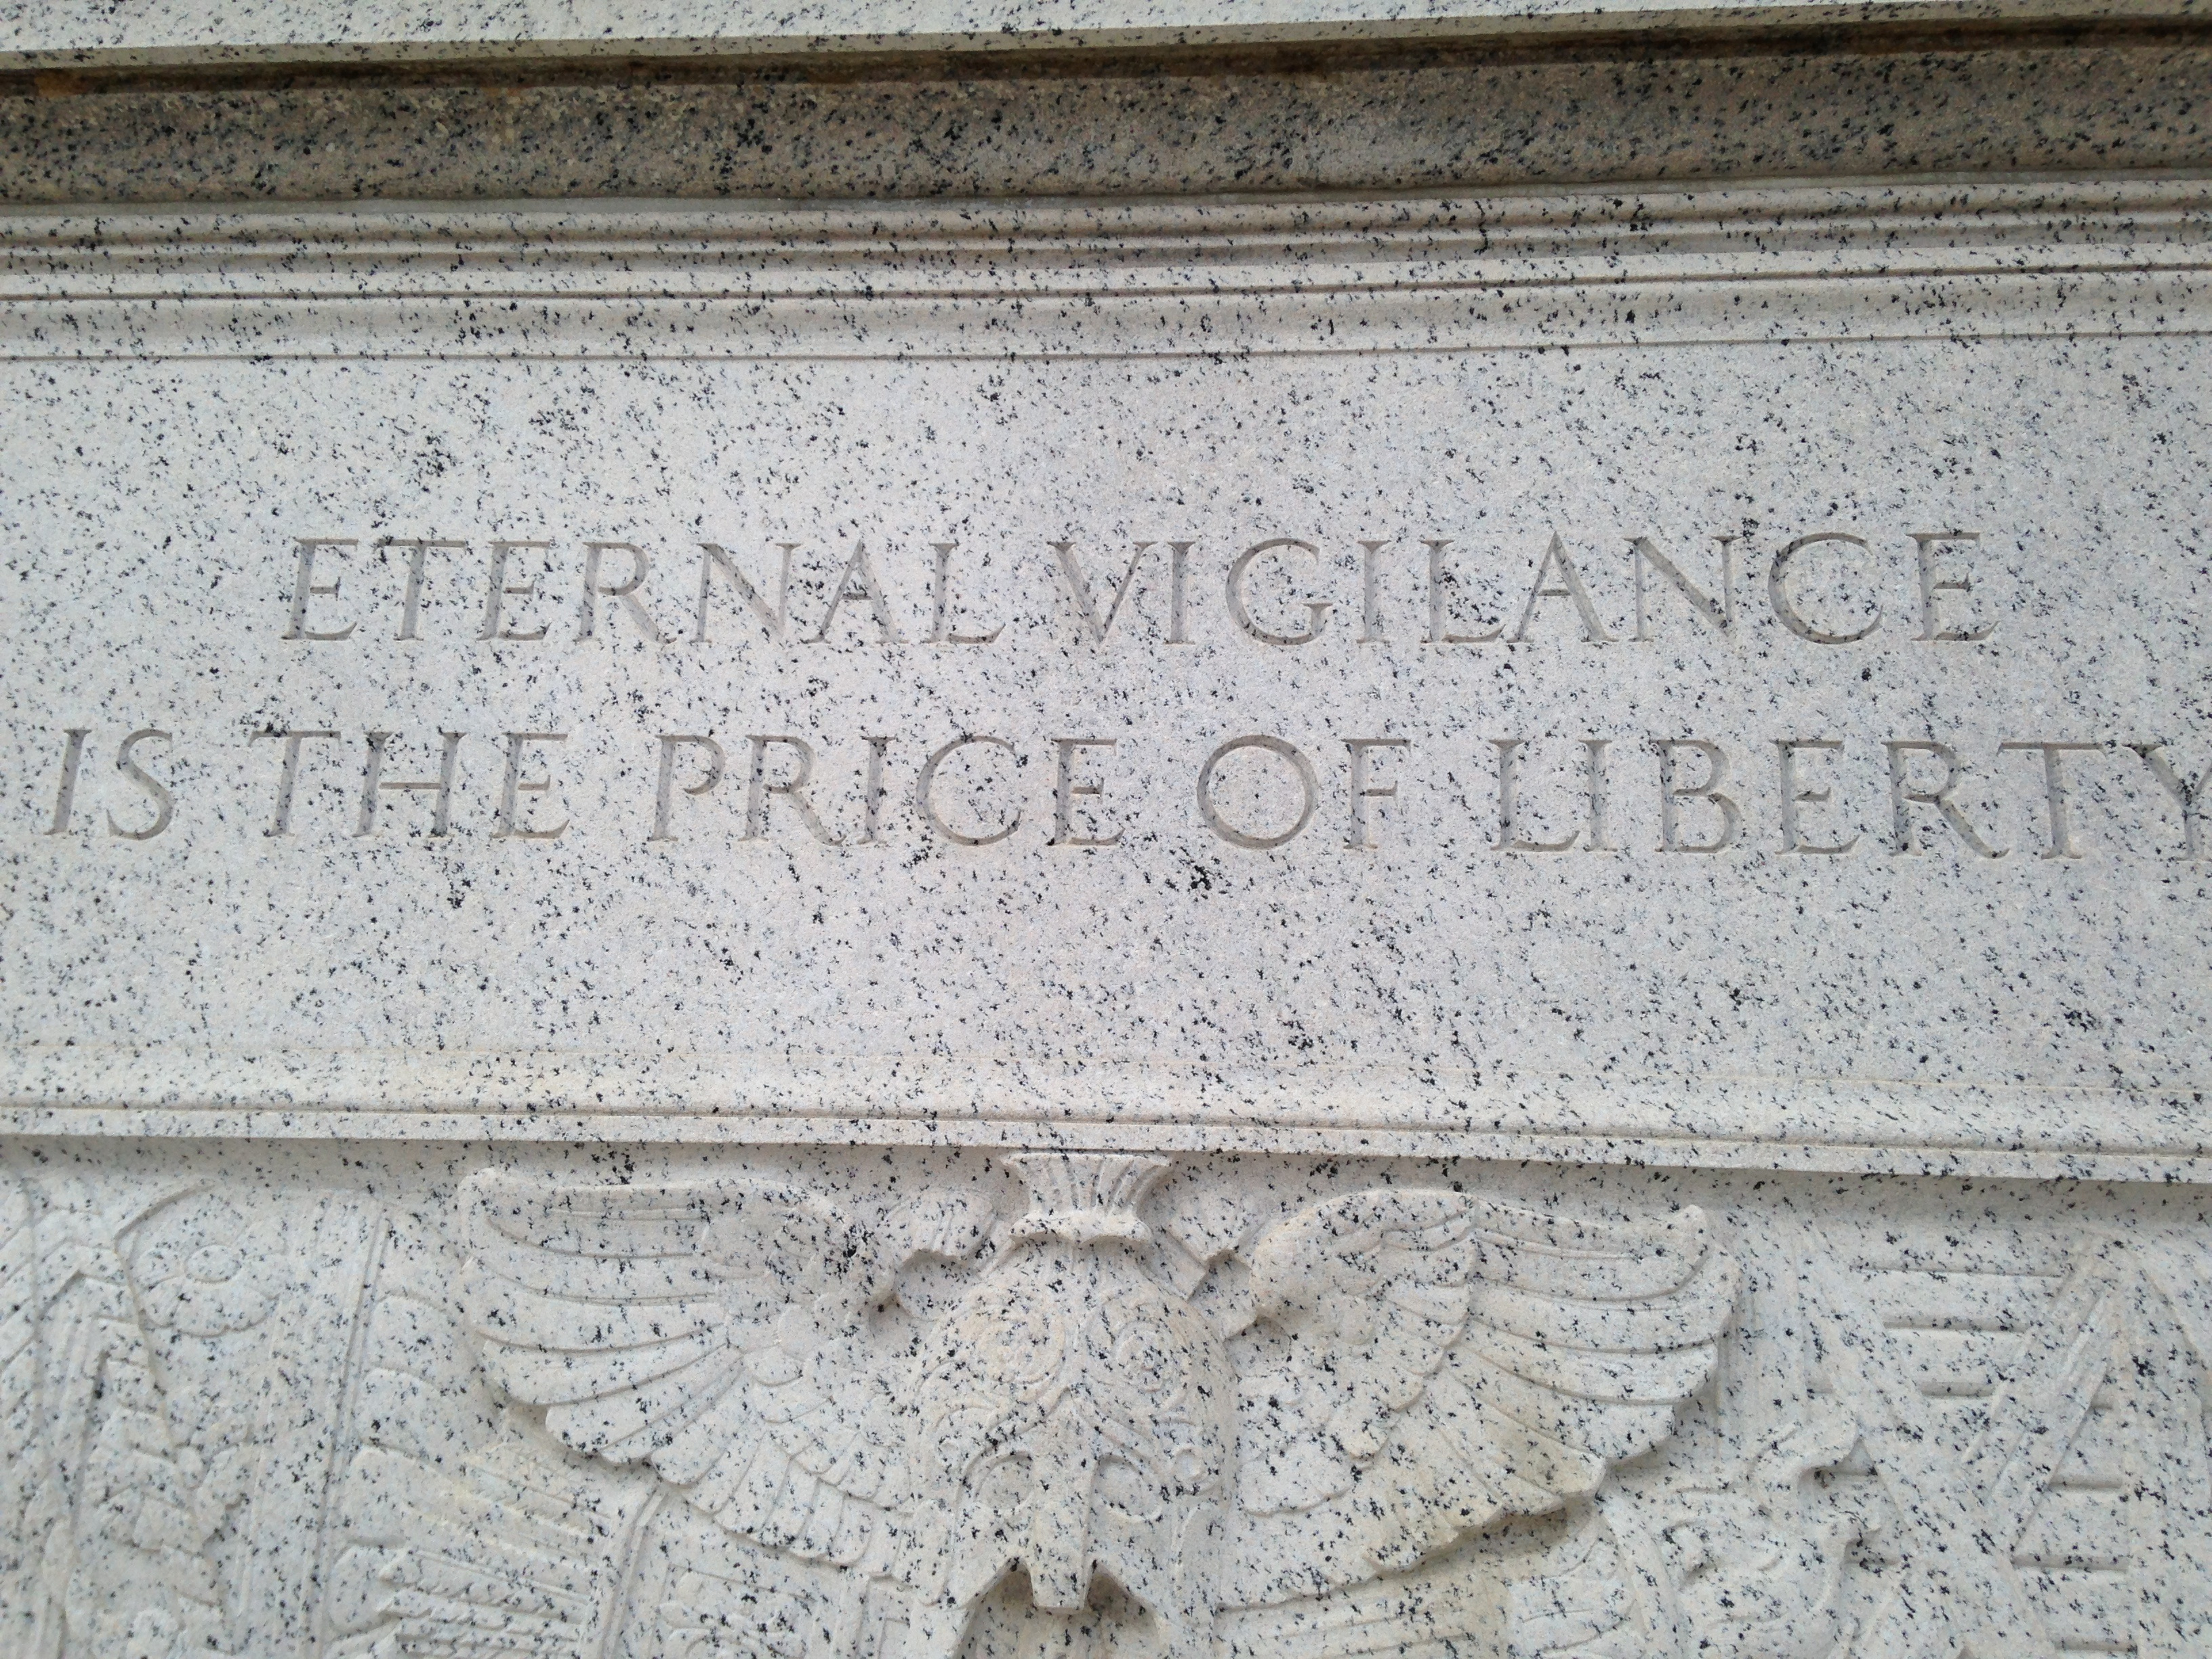 """eternal vigilance is the price of liberty essay How vulnerable is our bank data to a cyber-heist very thomas jefferson said """"eternal vigilance is the price of liberty"""" well said, especially as it."""